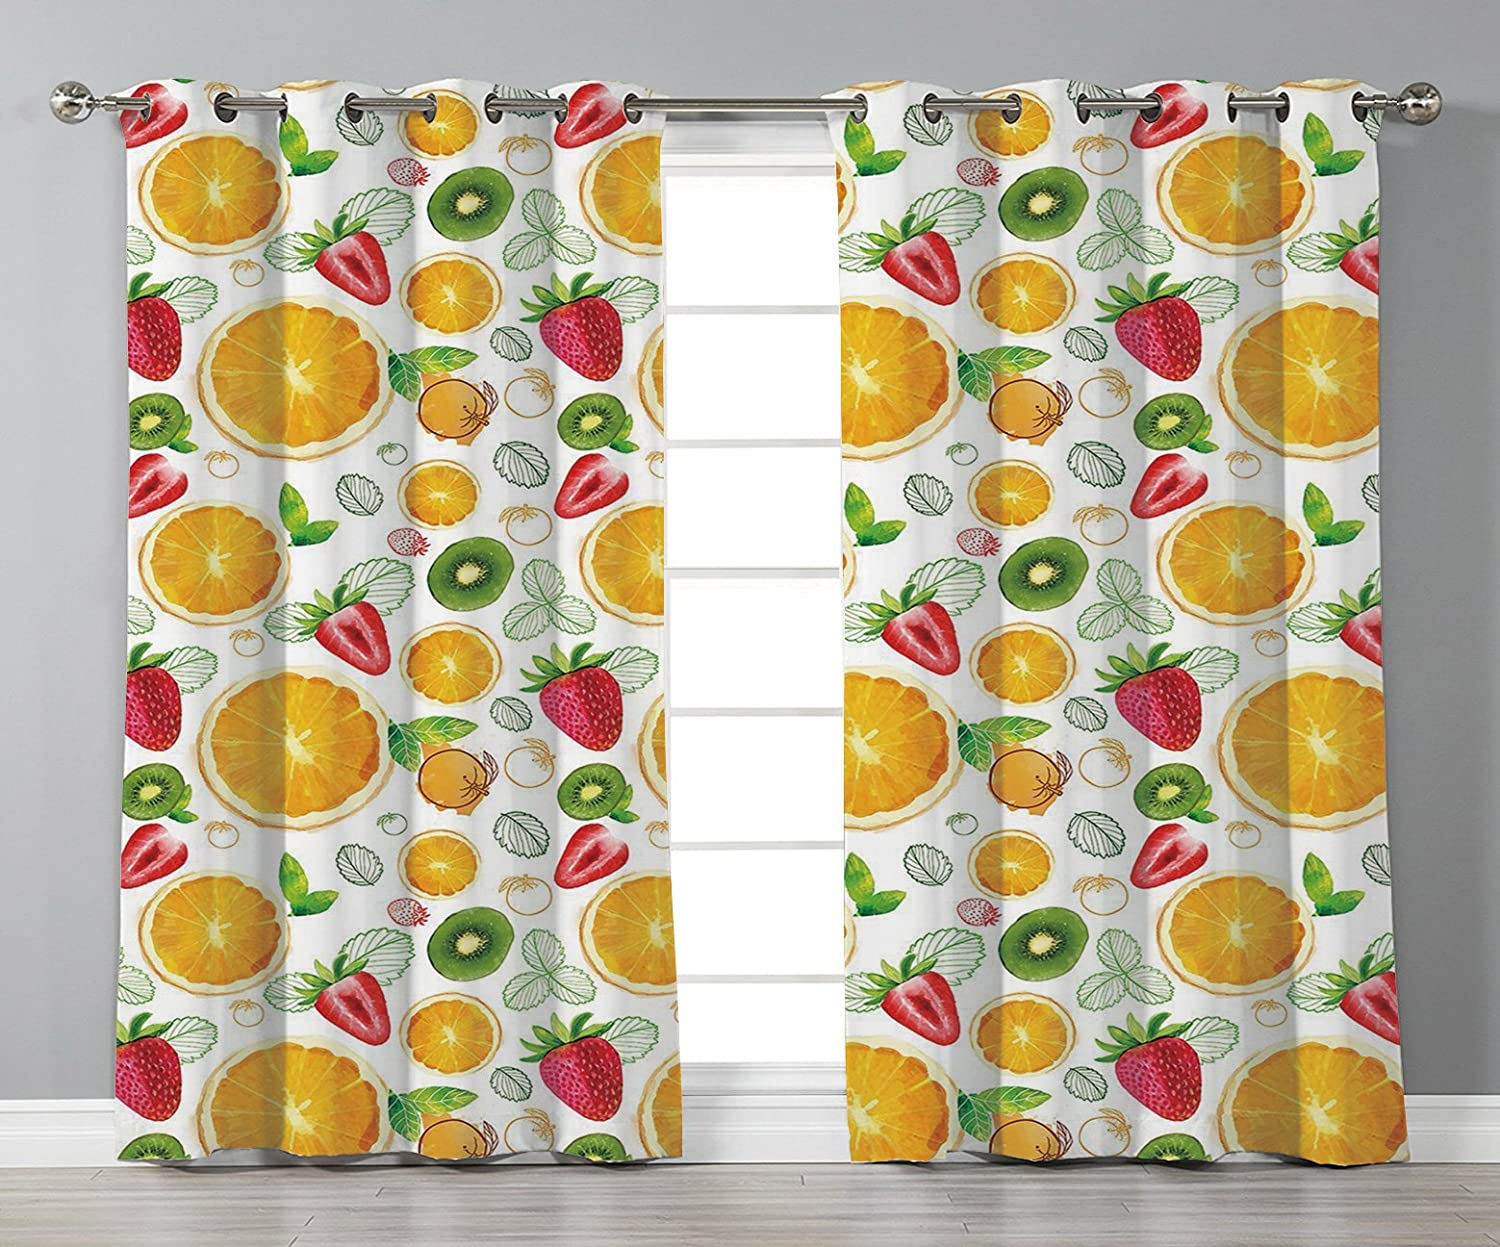 iPrint Stylish Window Curtains,Fruits,Citrus Kiwi Lemon Leaves Apricot Watermelon Fresh Exotic Kitchen,Earth Yellow Red Lime Green,2 Panel Set Window Drapes,for Living Room Bedroom Kitchen Cafe